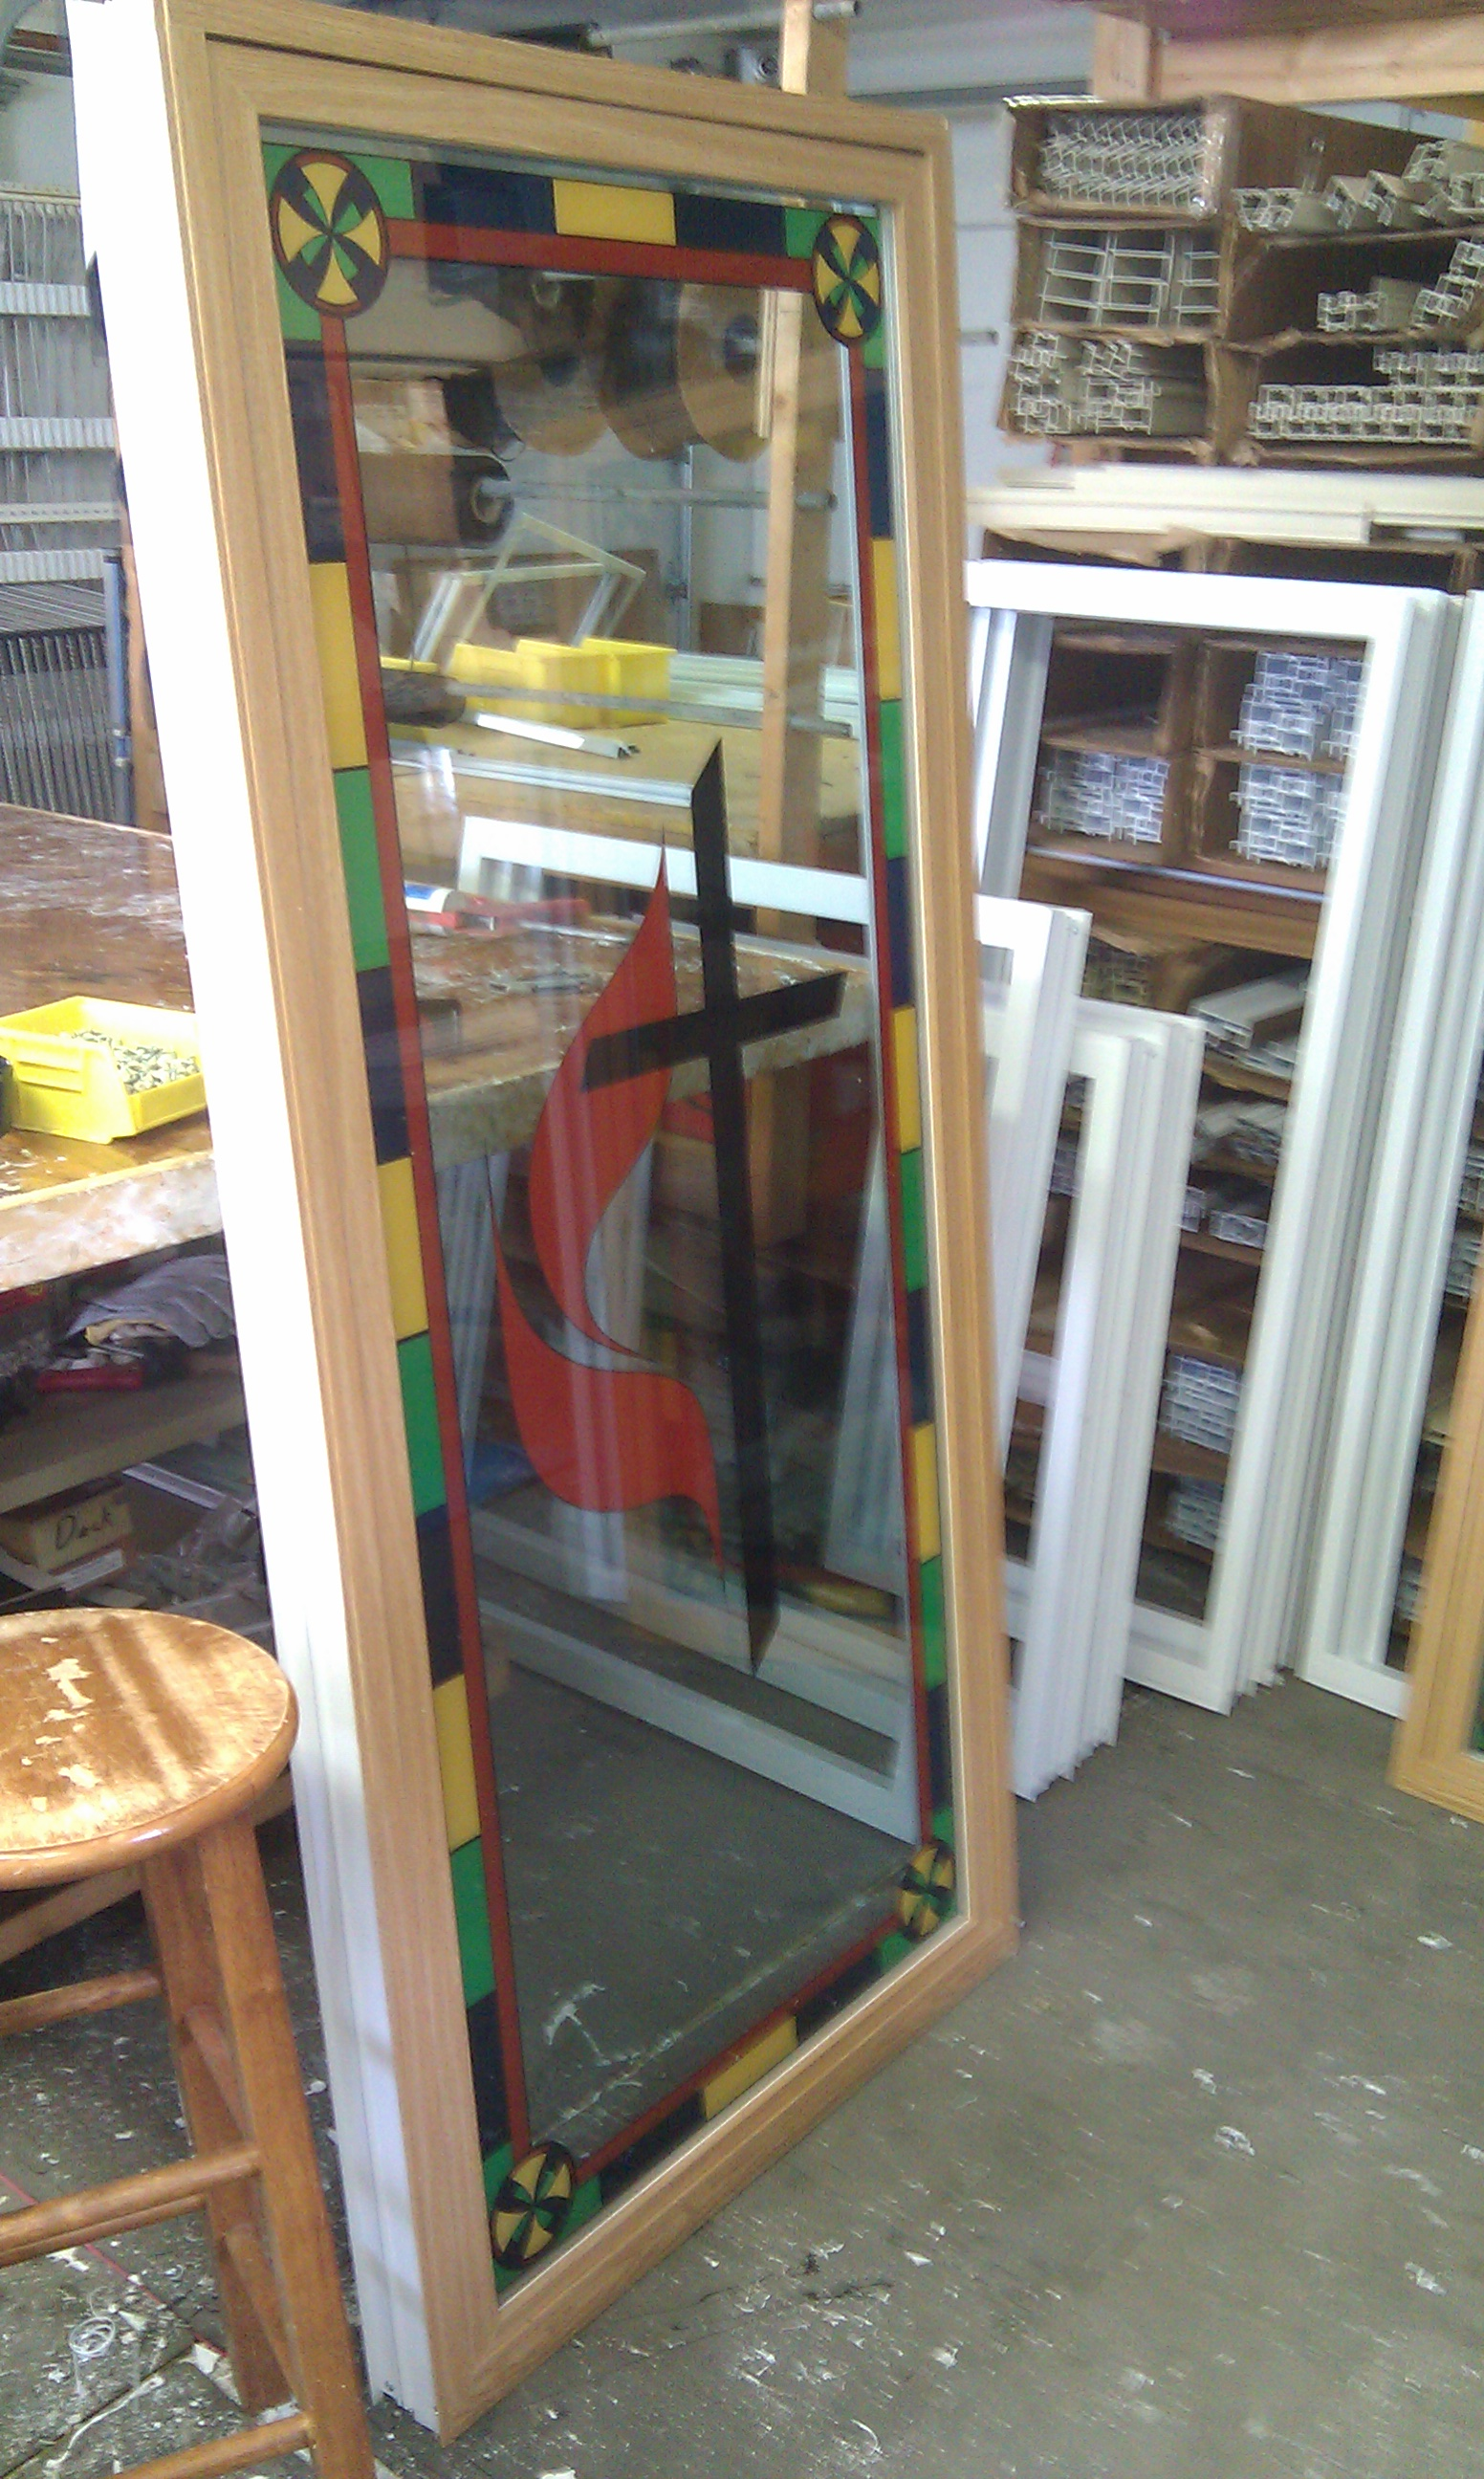 Insulated stained glass. Double pane stained glass. Energy efficient stained glass. Colored cross